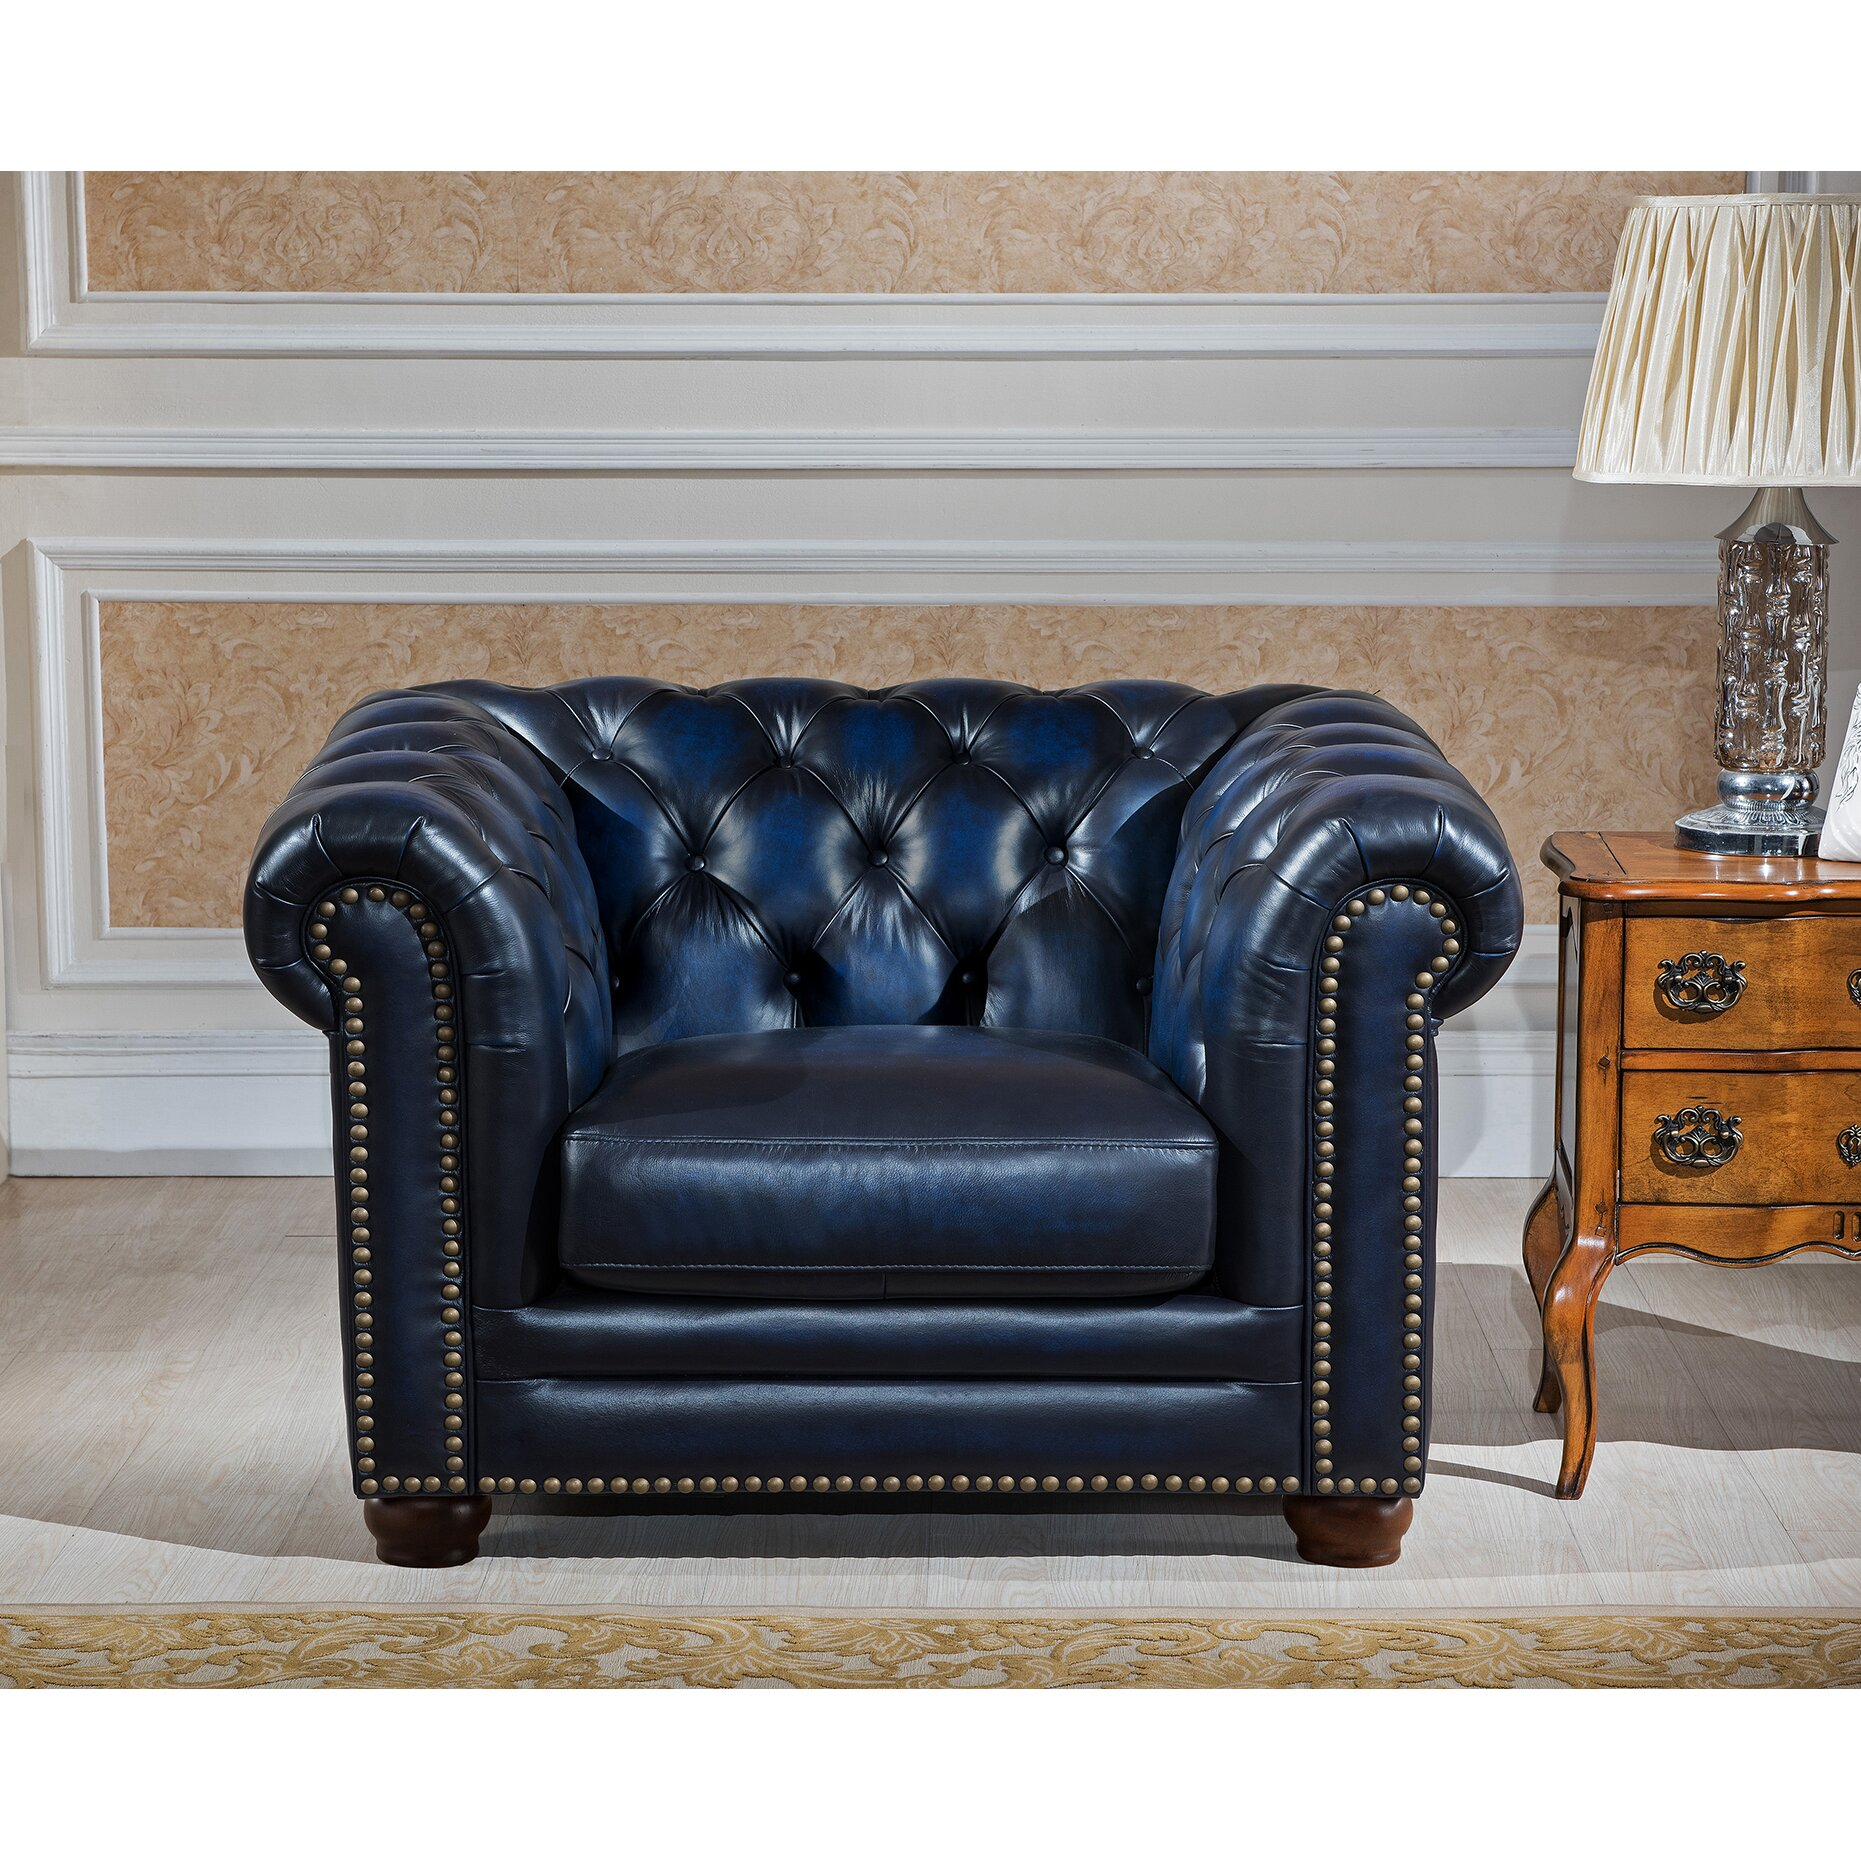 amax nebraska chesterfield genuine leather sofa loveseat and chair set wayfair. Black Bedroom Furniture Sets. Home Design Ideas